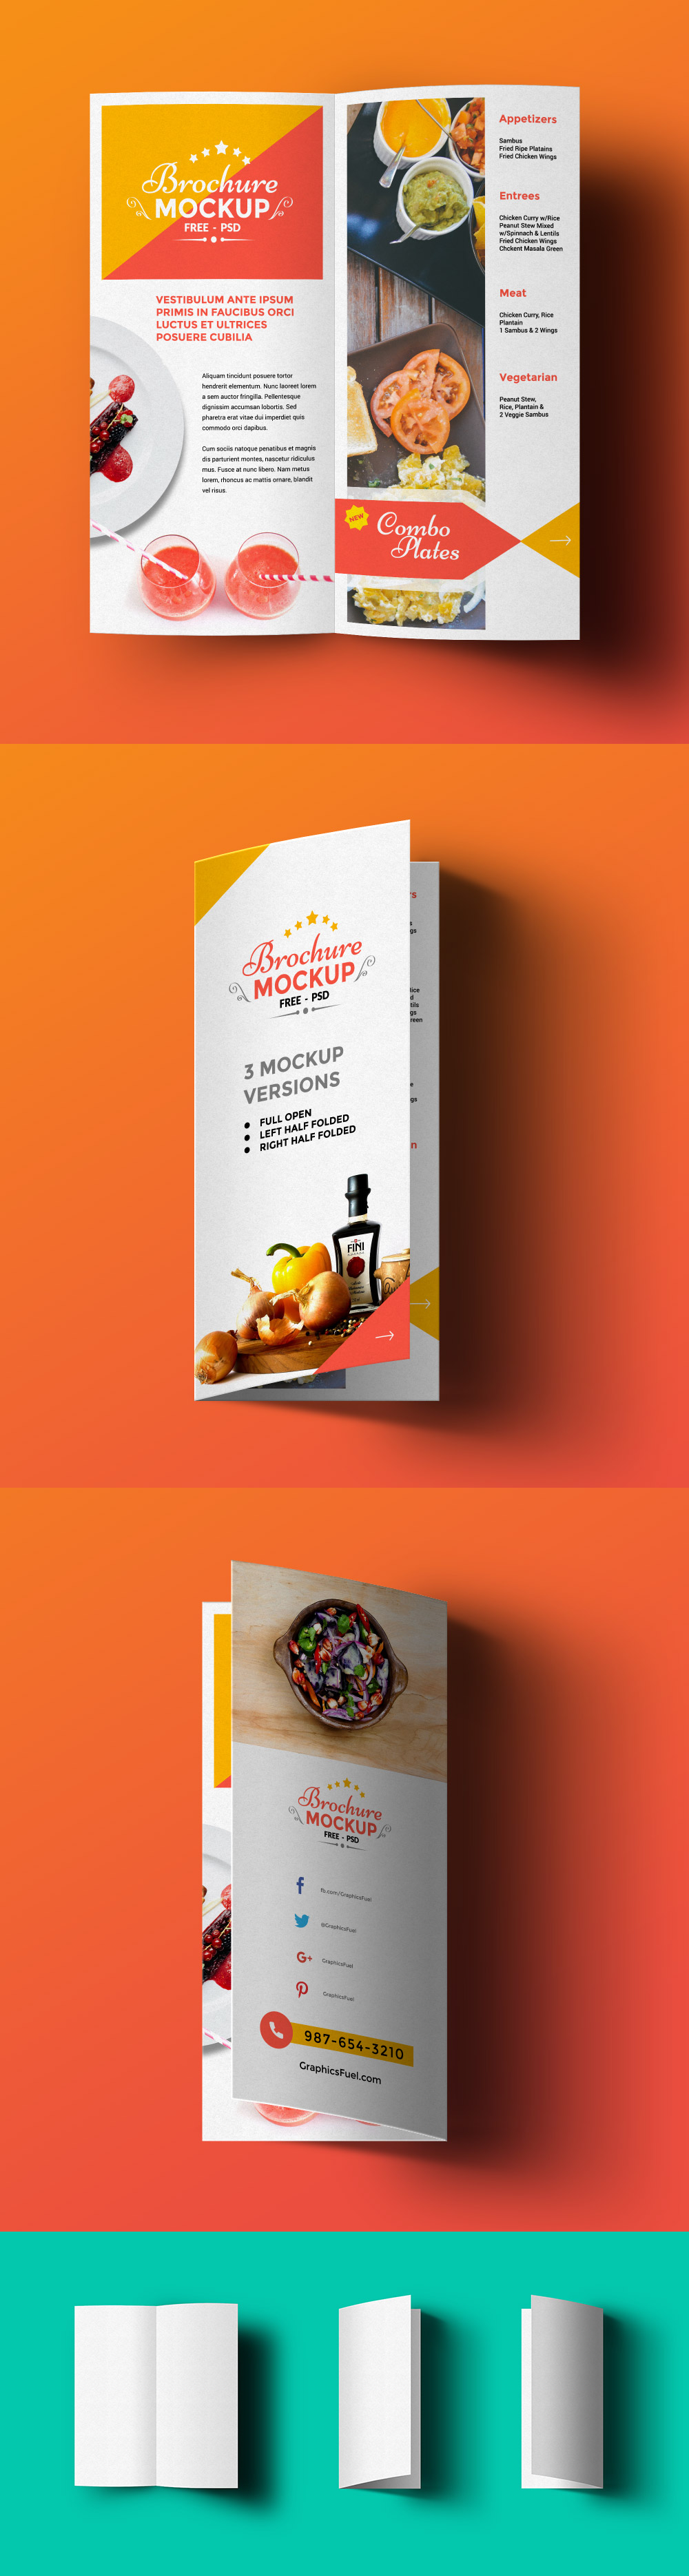 Free bi fold brochure mockup graphicsfuel for Brochure photoshop template